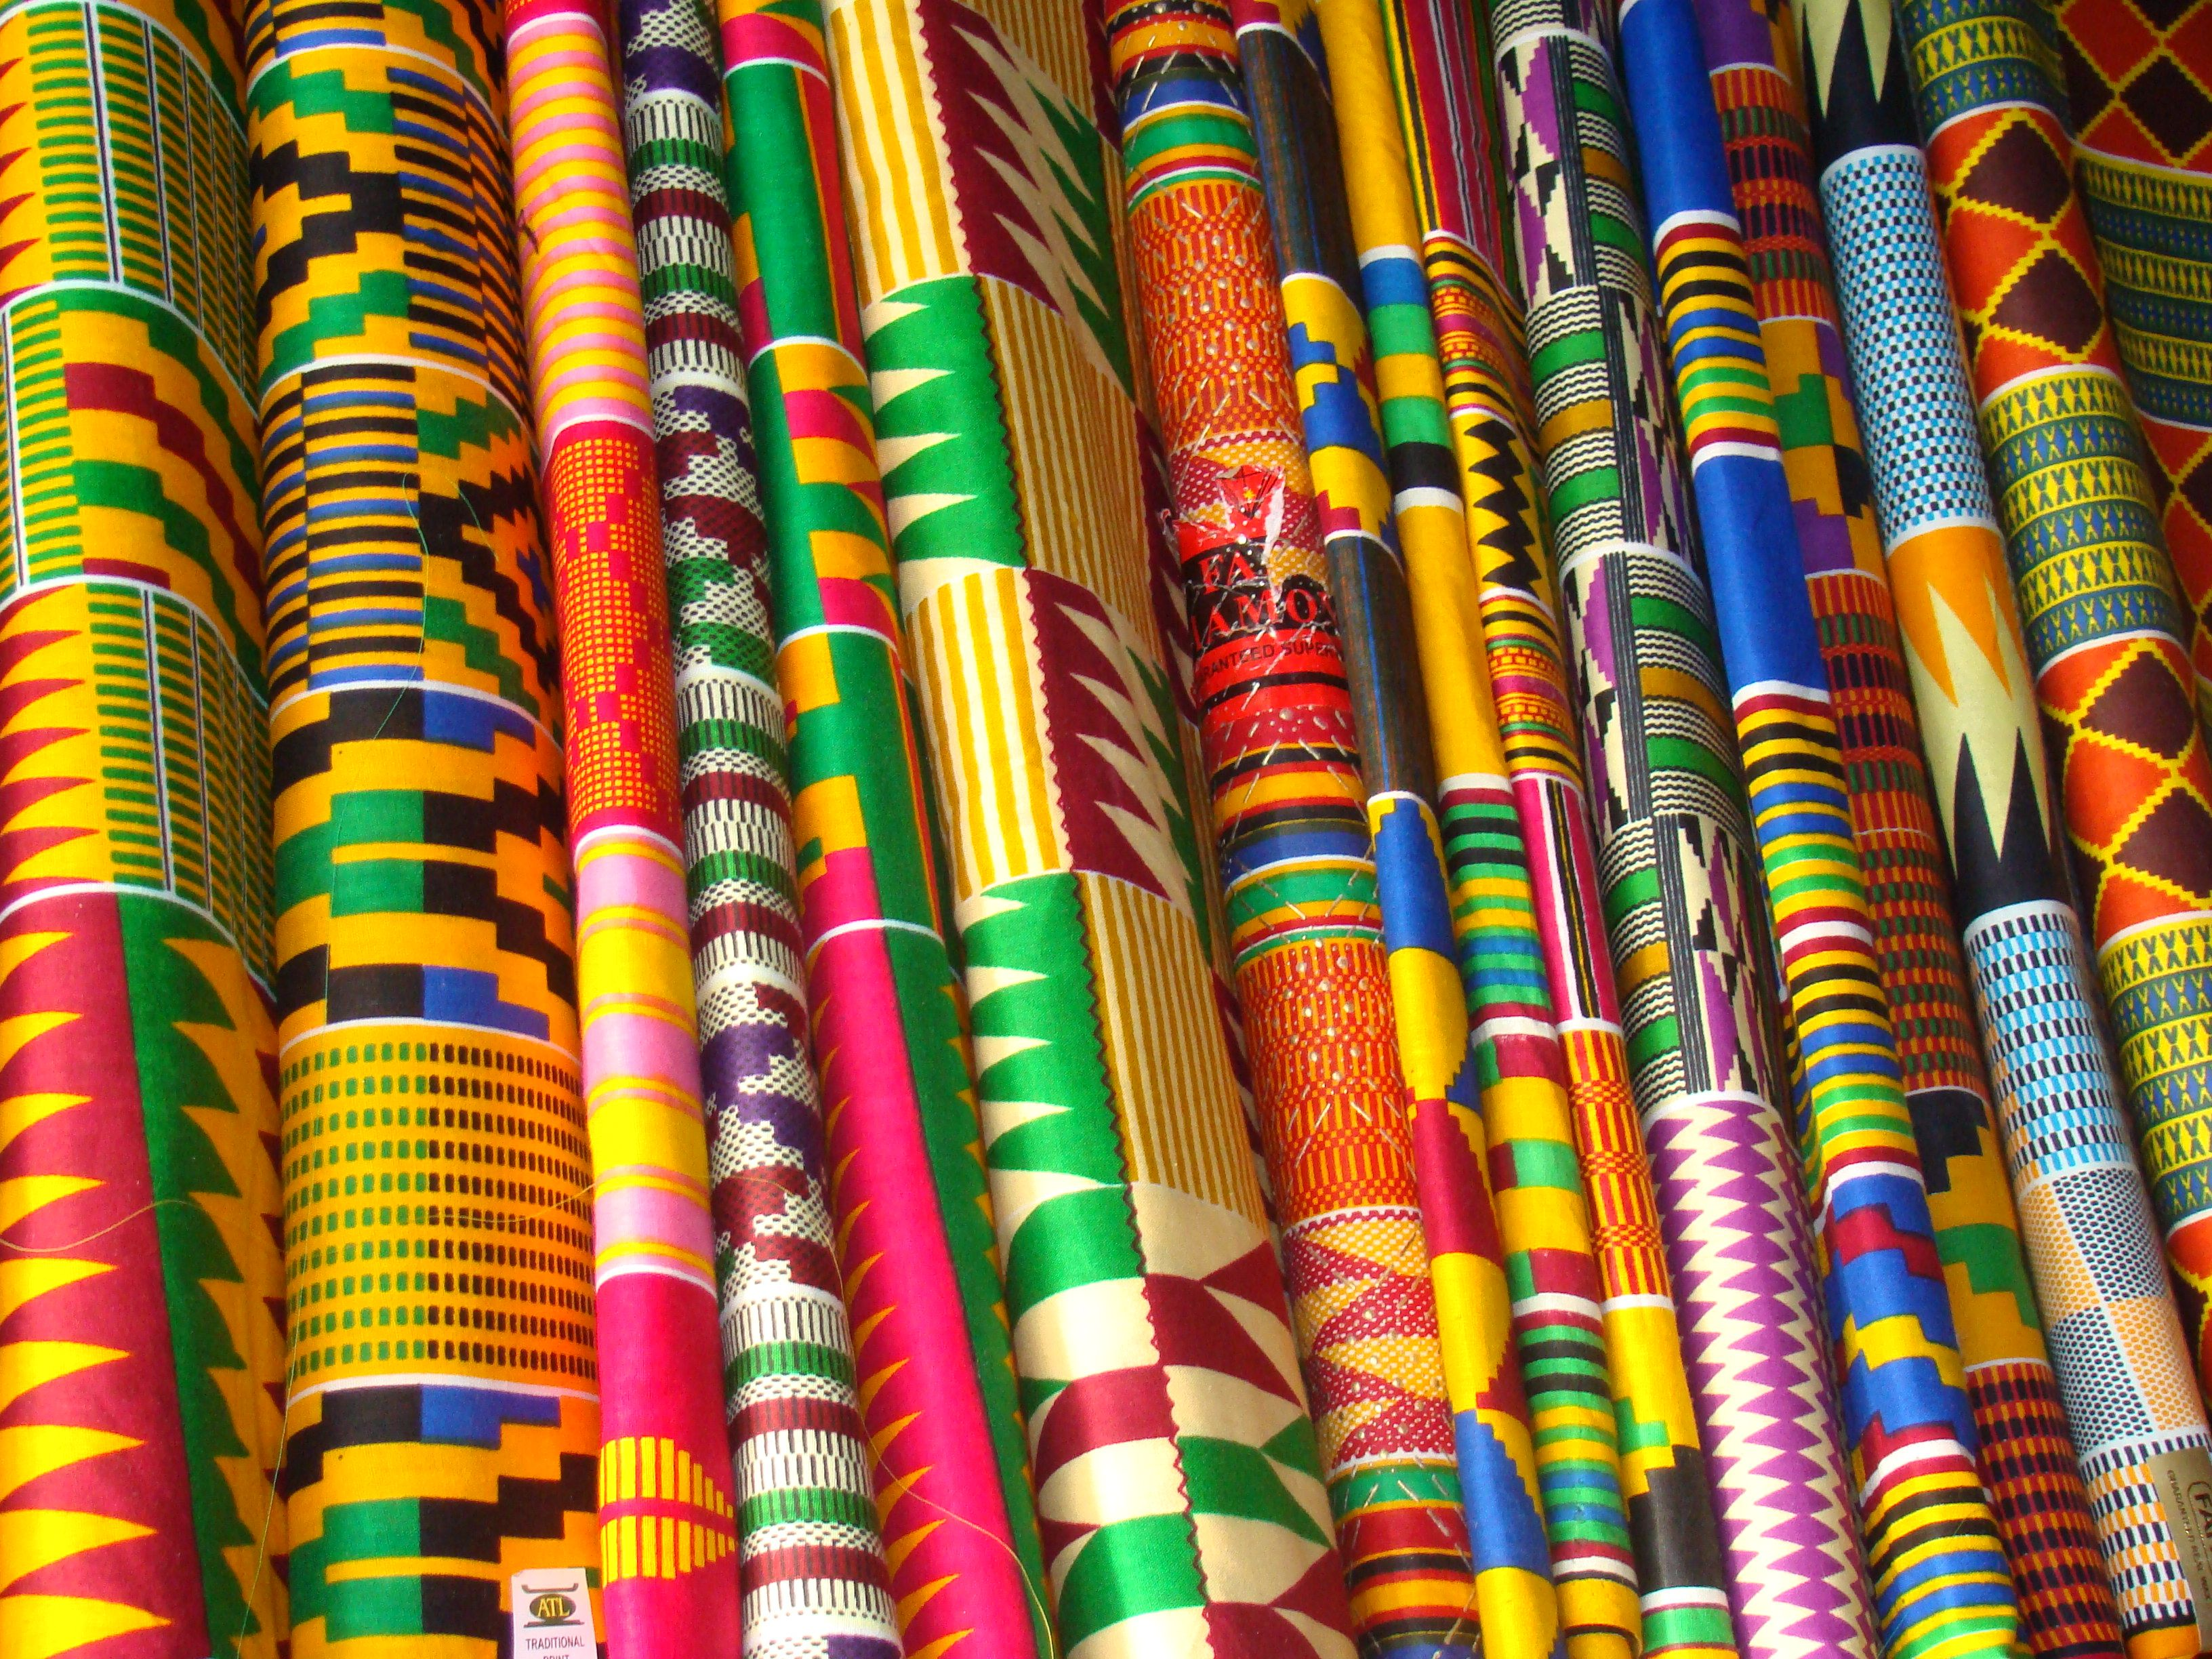 Kente Fabric from Ghana | Photography | Pinterest | Ghana ...